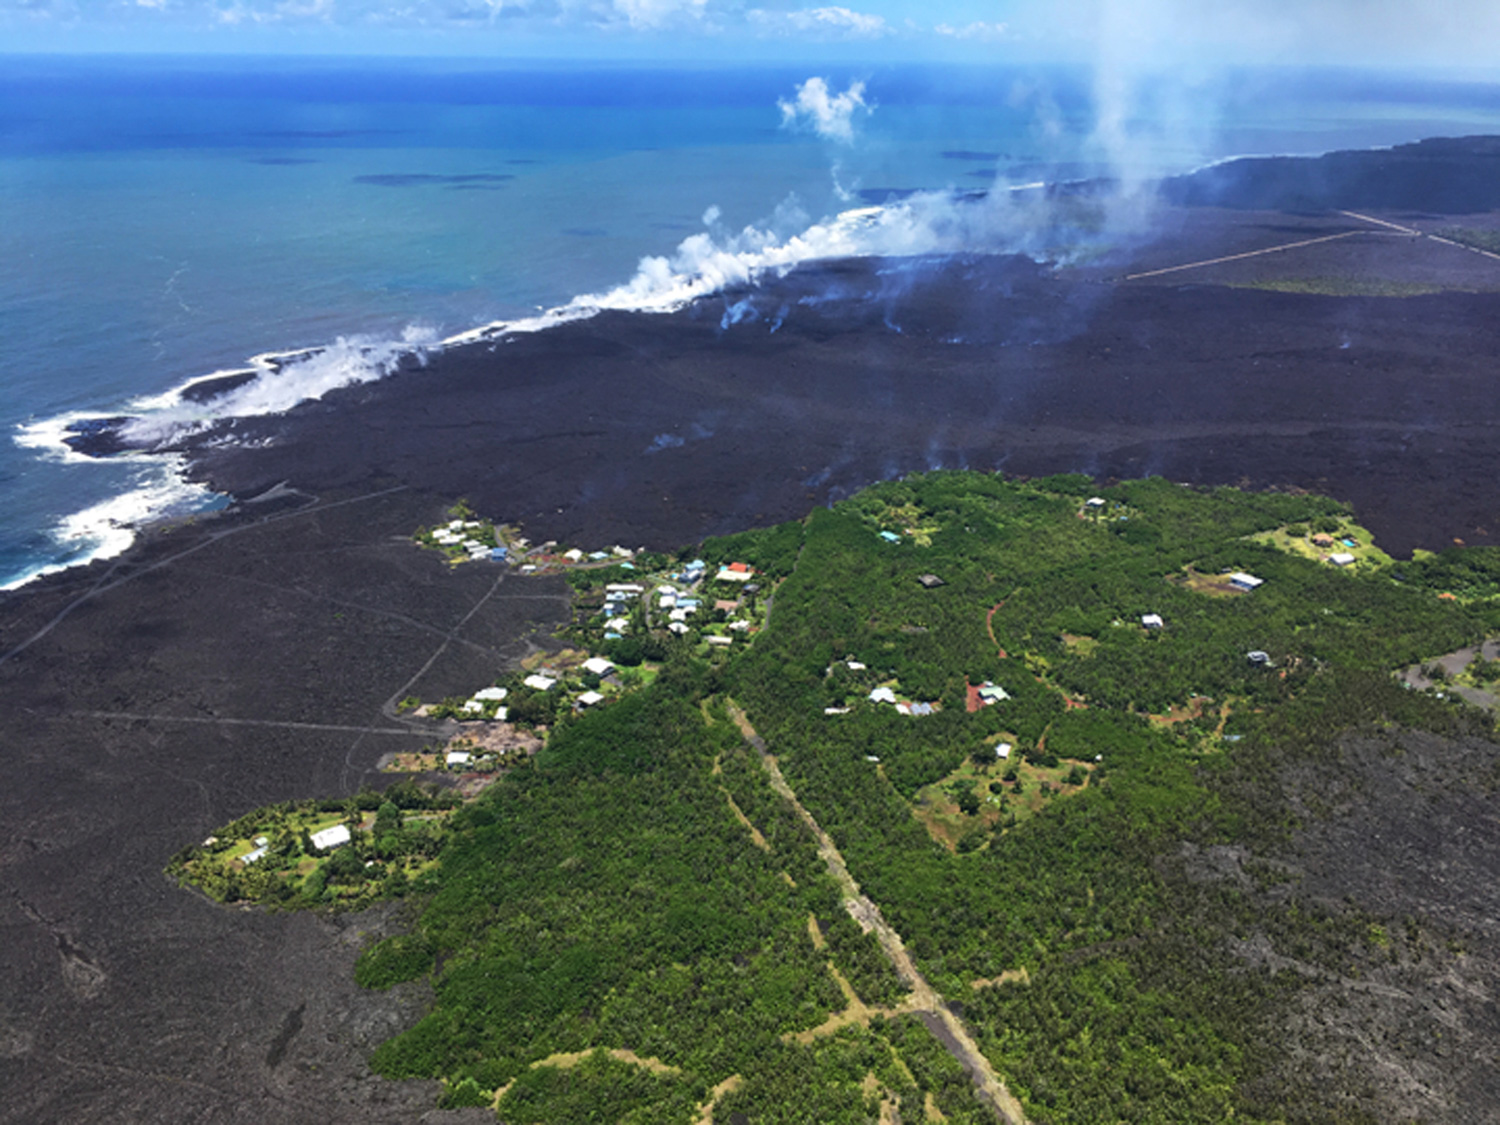 "<div class=""meta image-caption""><div class=""origin-logo origin-image none""><span>none</span></div><span class=""caption-text"">The remains of the Kapoho Beach Lots subdivision and a fissure flow front at the town of Kapoho on the island of Hawaii. (U.S. Geological Survey via AP)</span></div>"